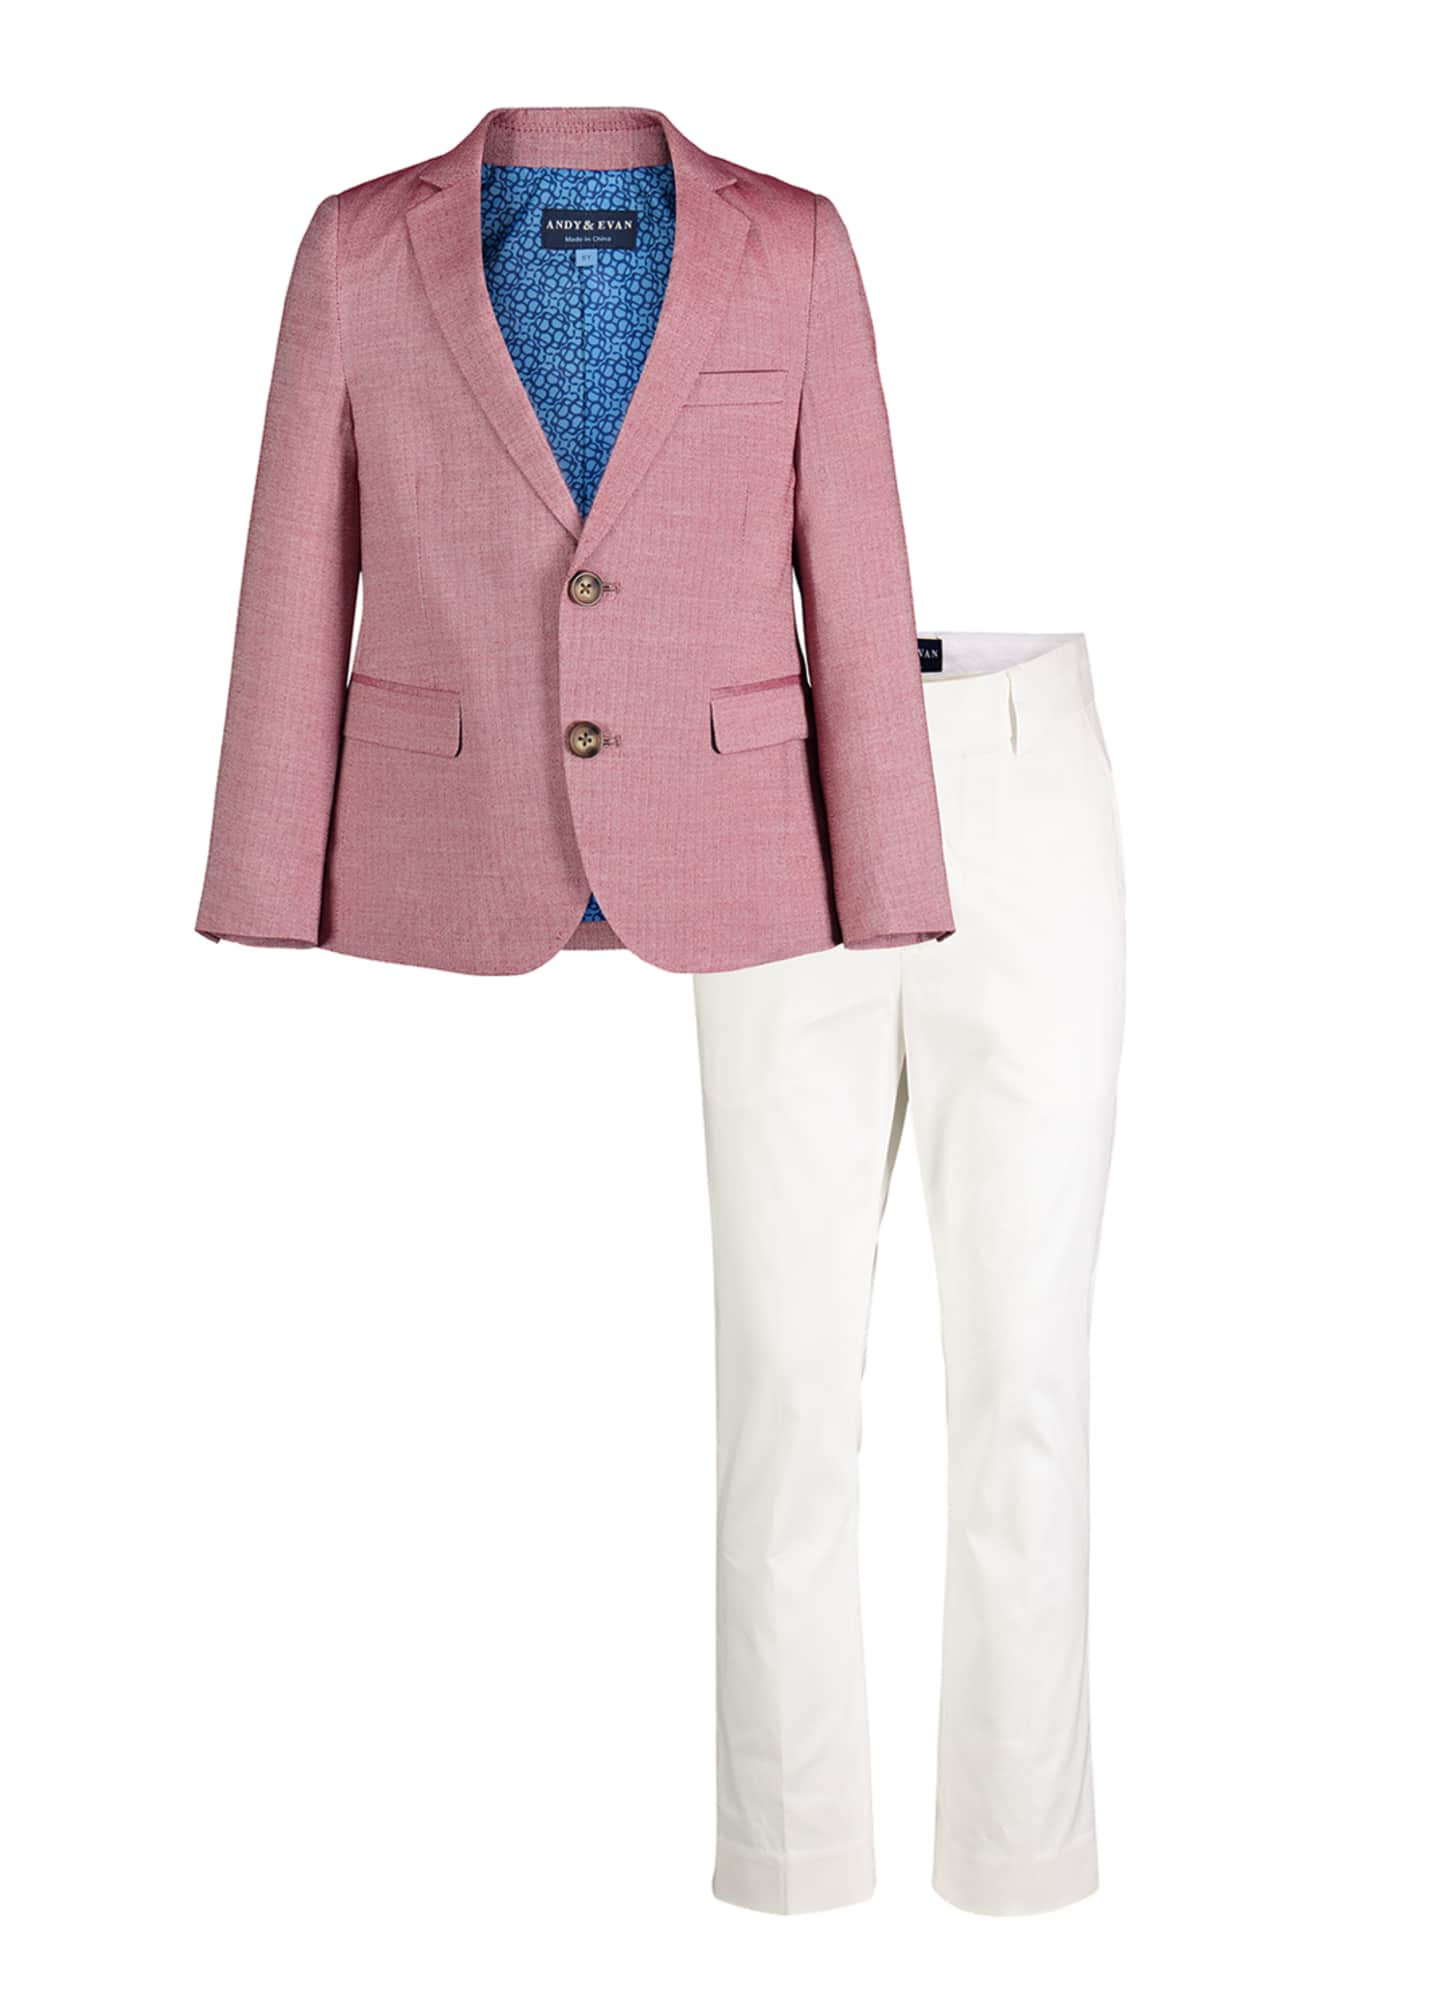 Andy & Evan Faded Oxford Blazer w/ Straight-Leg